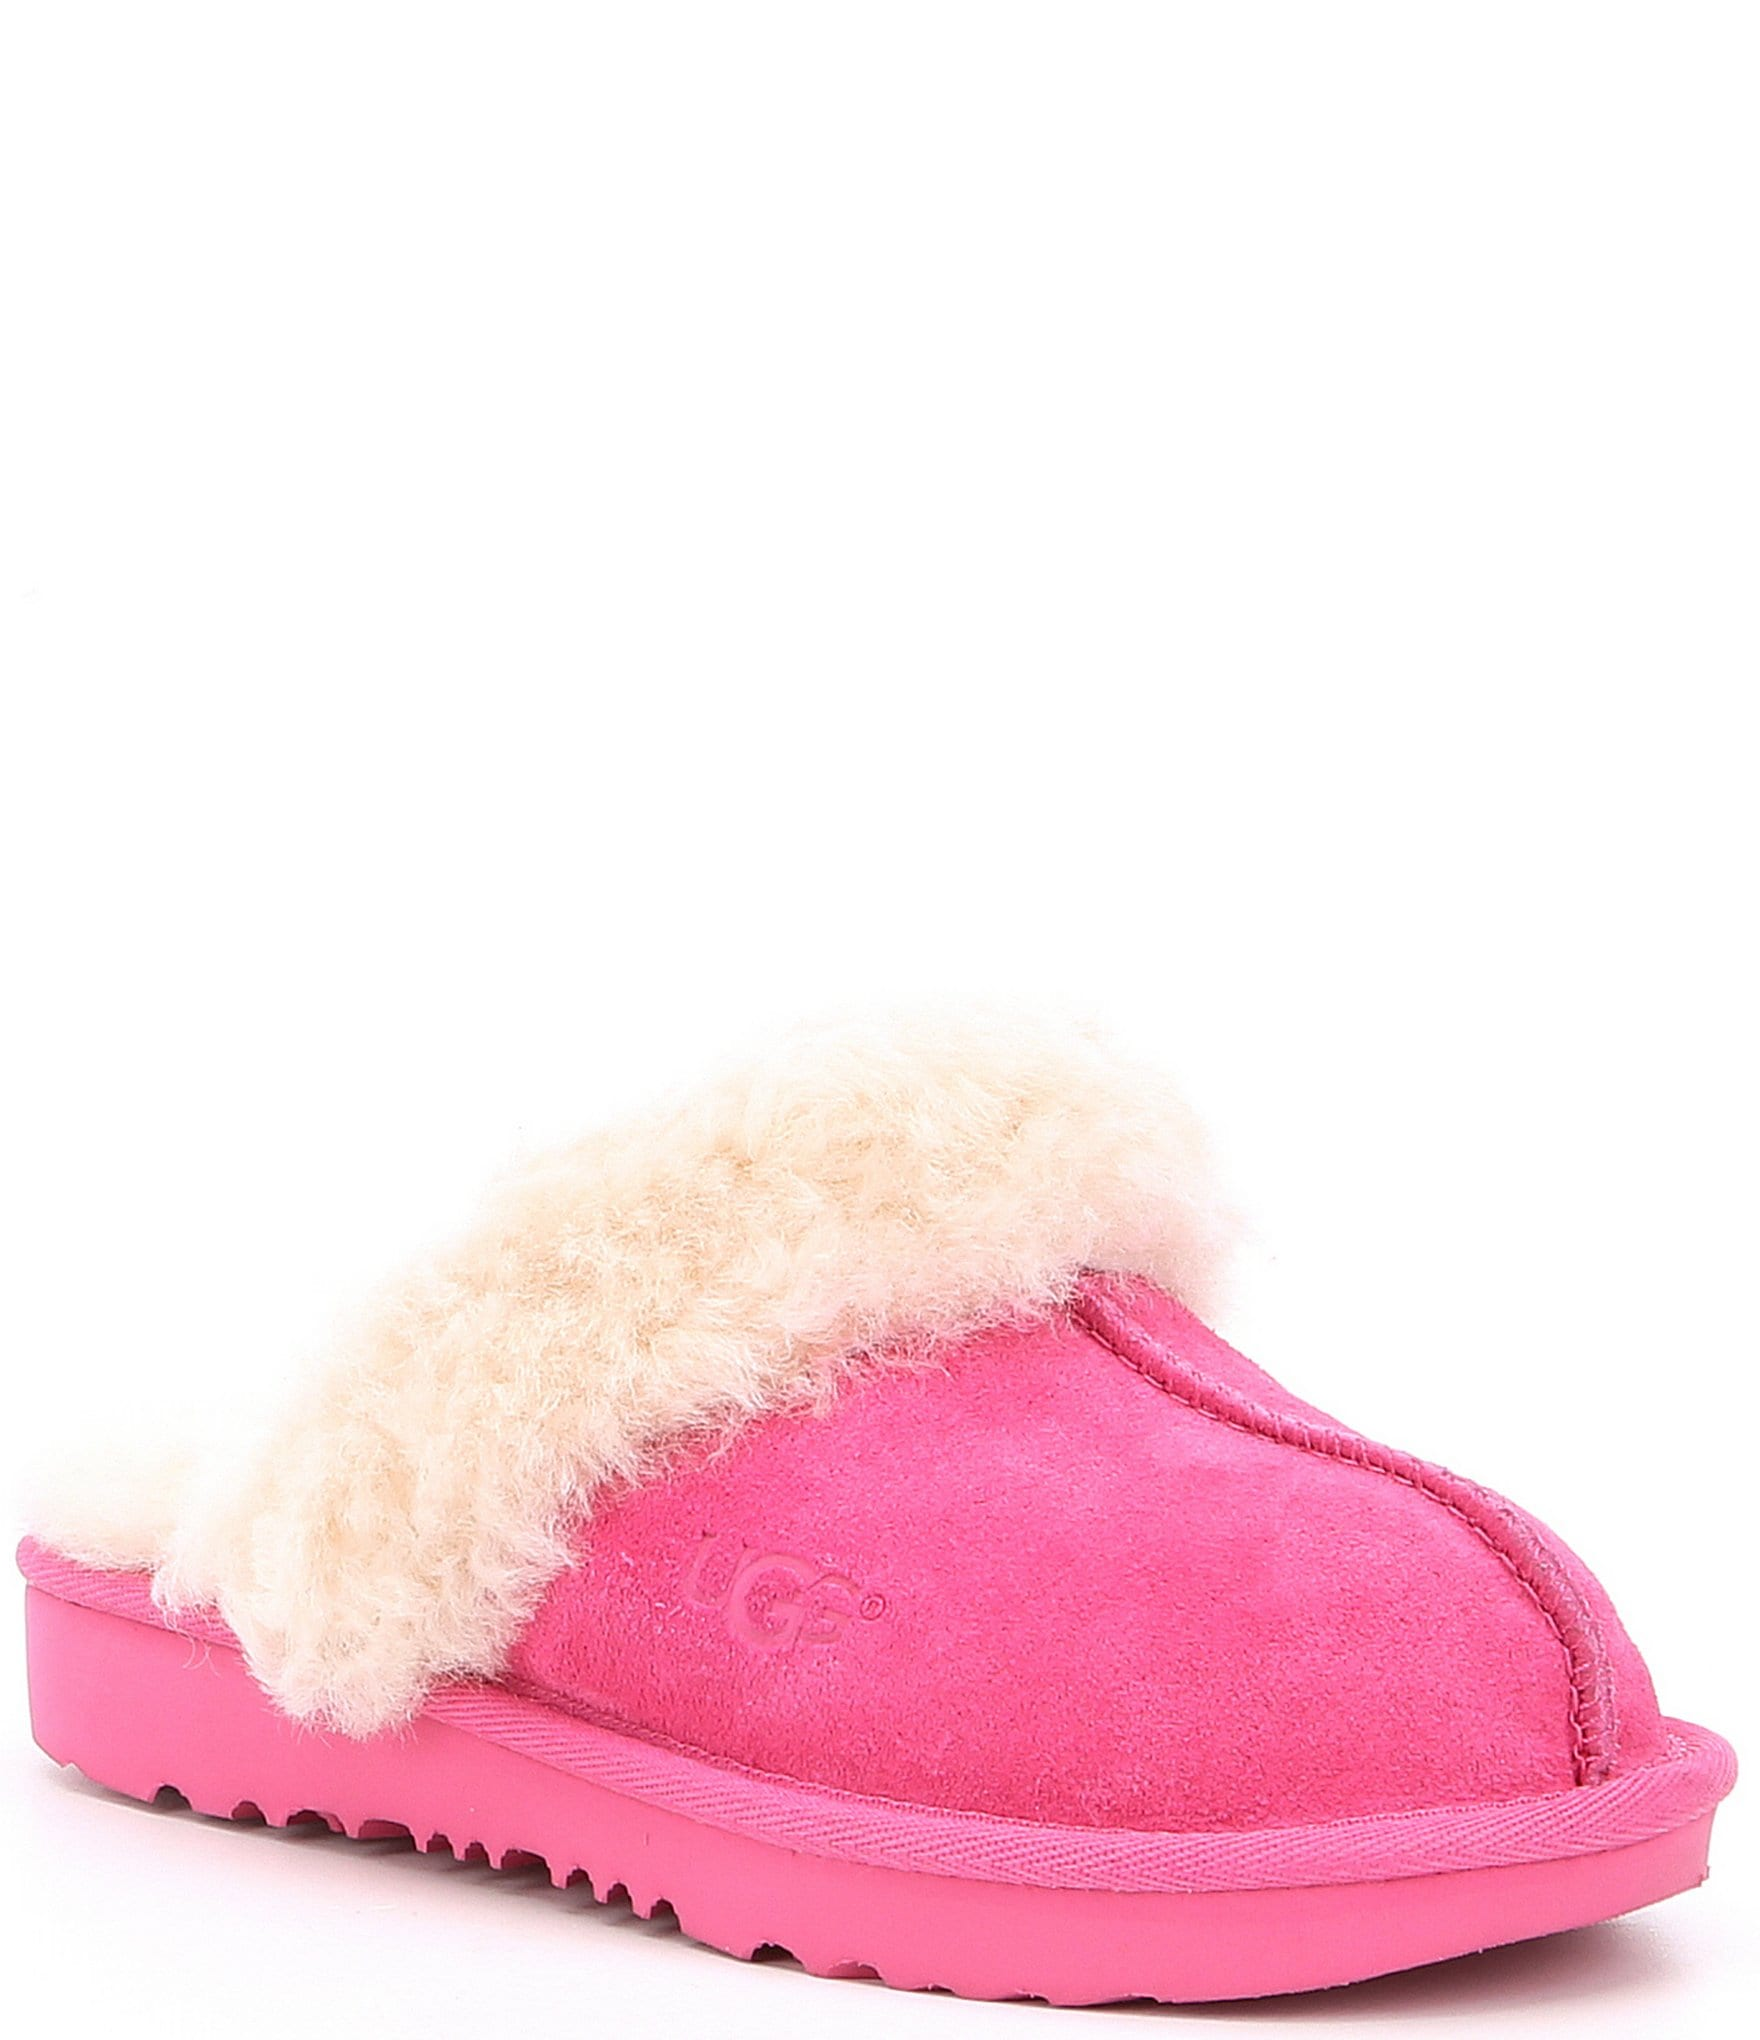 6b5582e93b80f ugg slippers  Shoes for Women